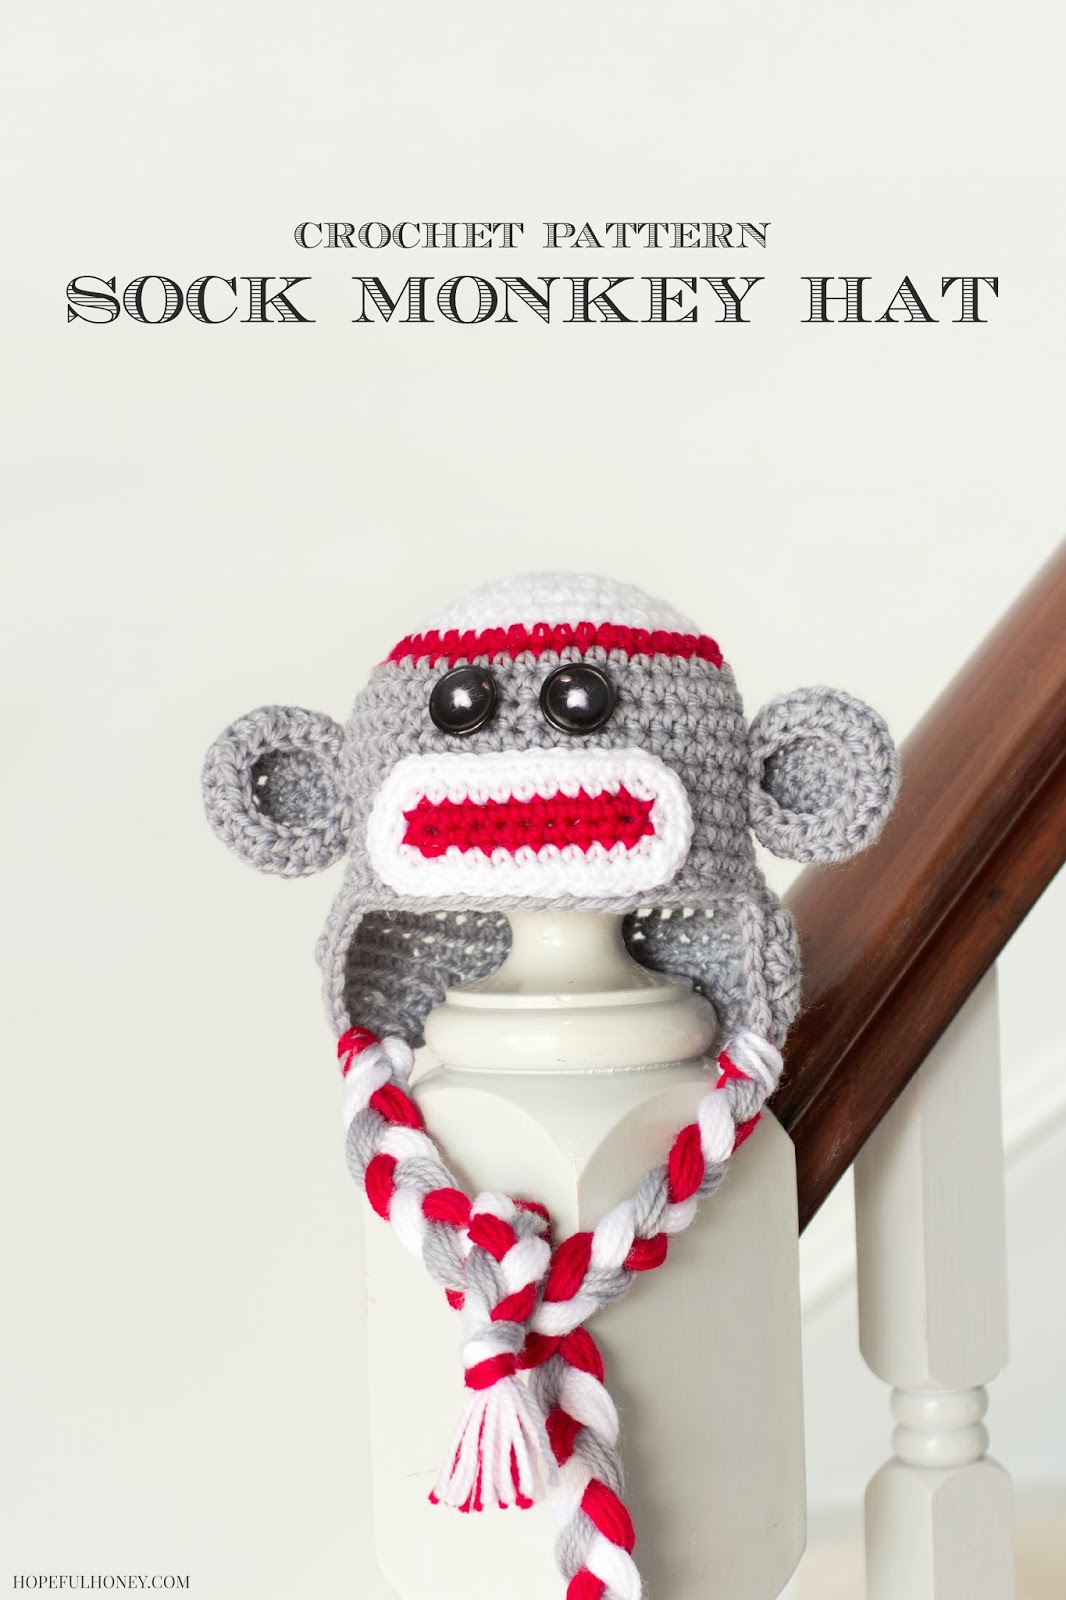 Free Crochet Patterns Monkey Hat : Sock Monkey Baby Hat - Media - Crochet Me